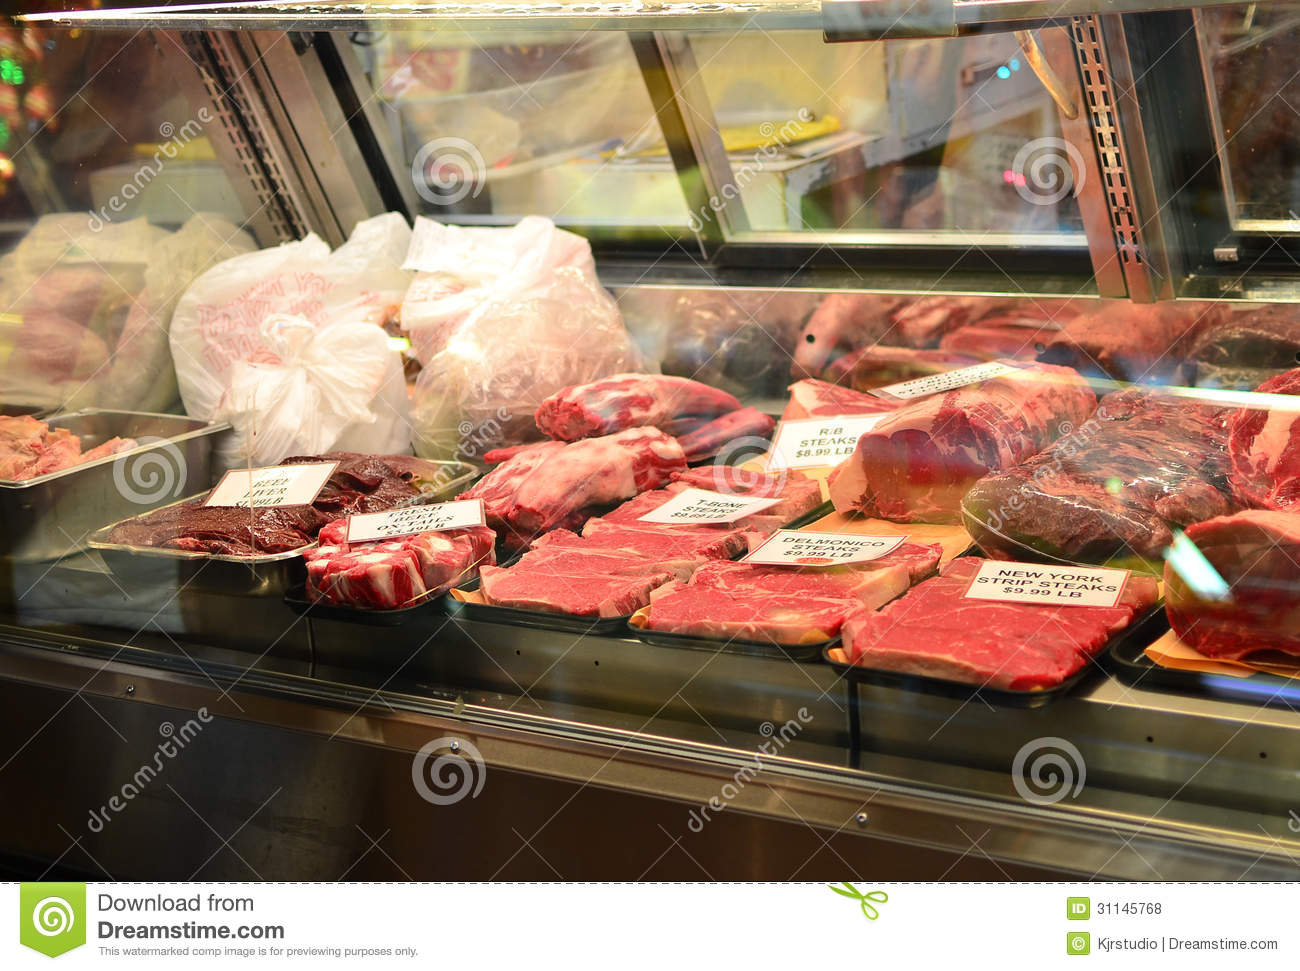 Stunning wide array of fine meats at the butcher shop. 1300 x 971 · 192 kB · jpeg